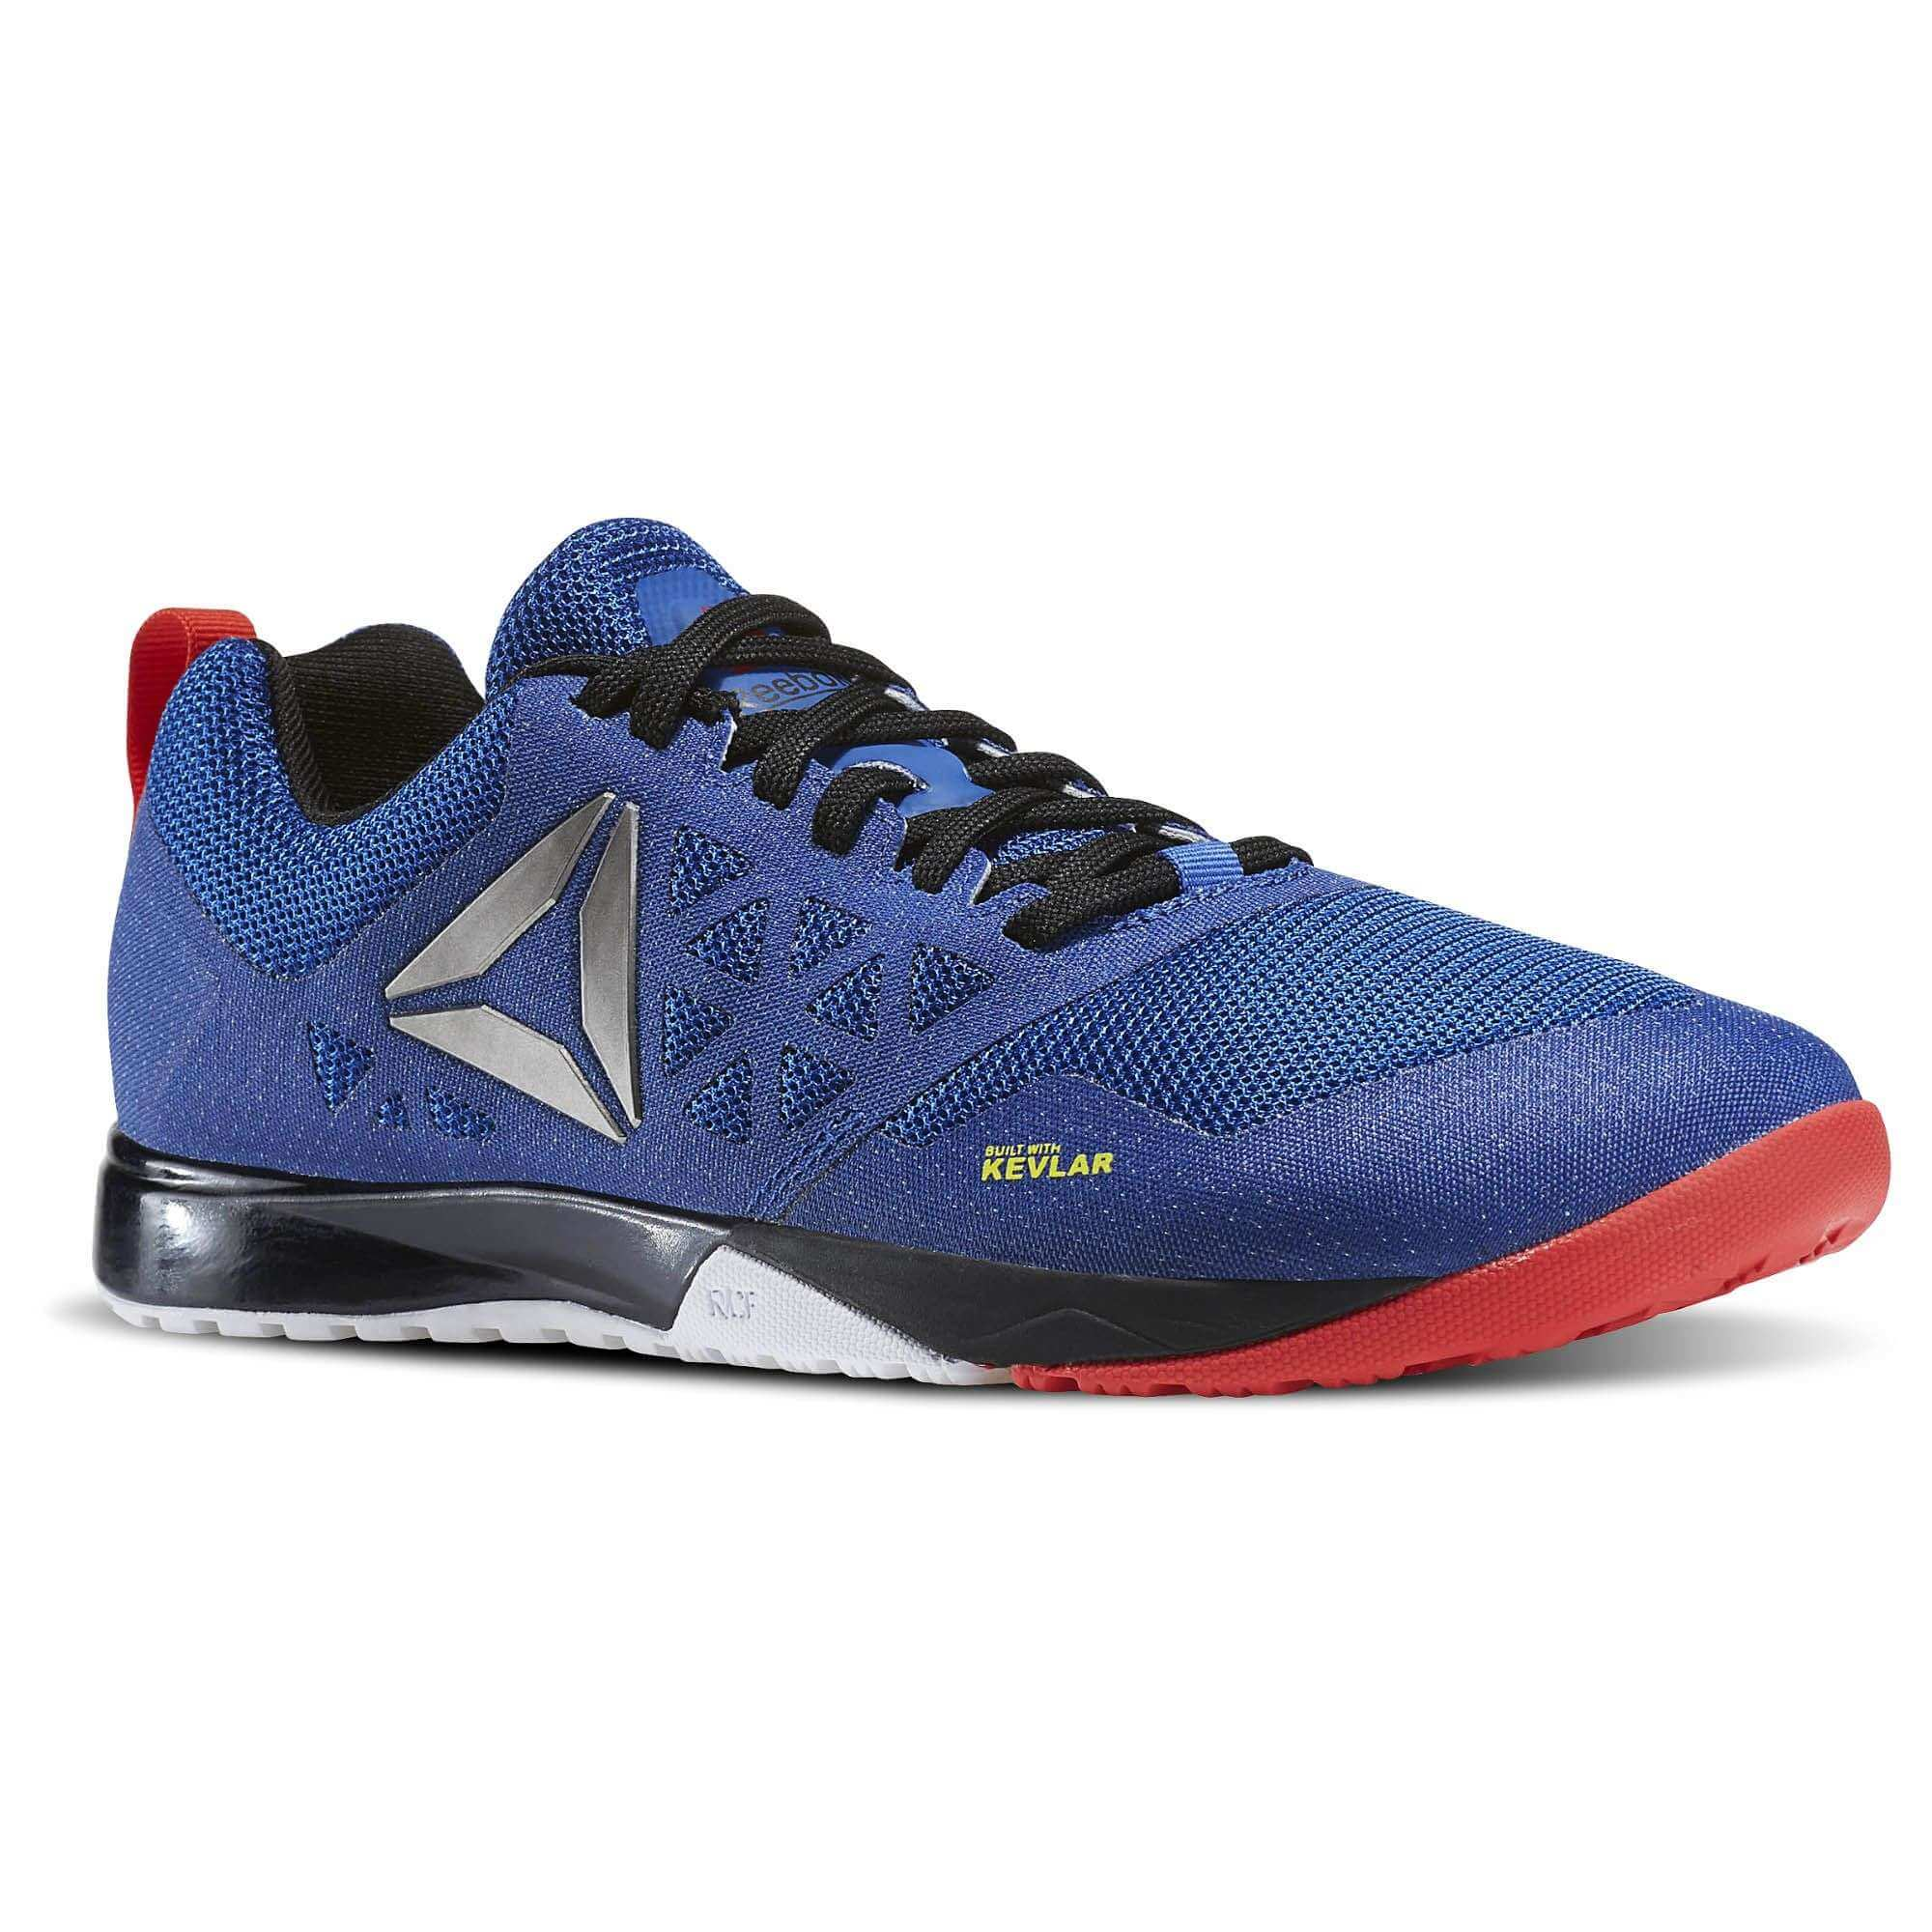 mange moderigtige outlet butik super tilbud Reebok CrossFit Nano 6.0 Review - The Ultimate CrossFit Shoe